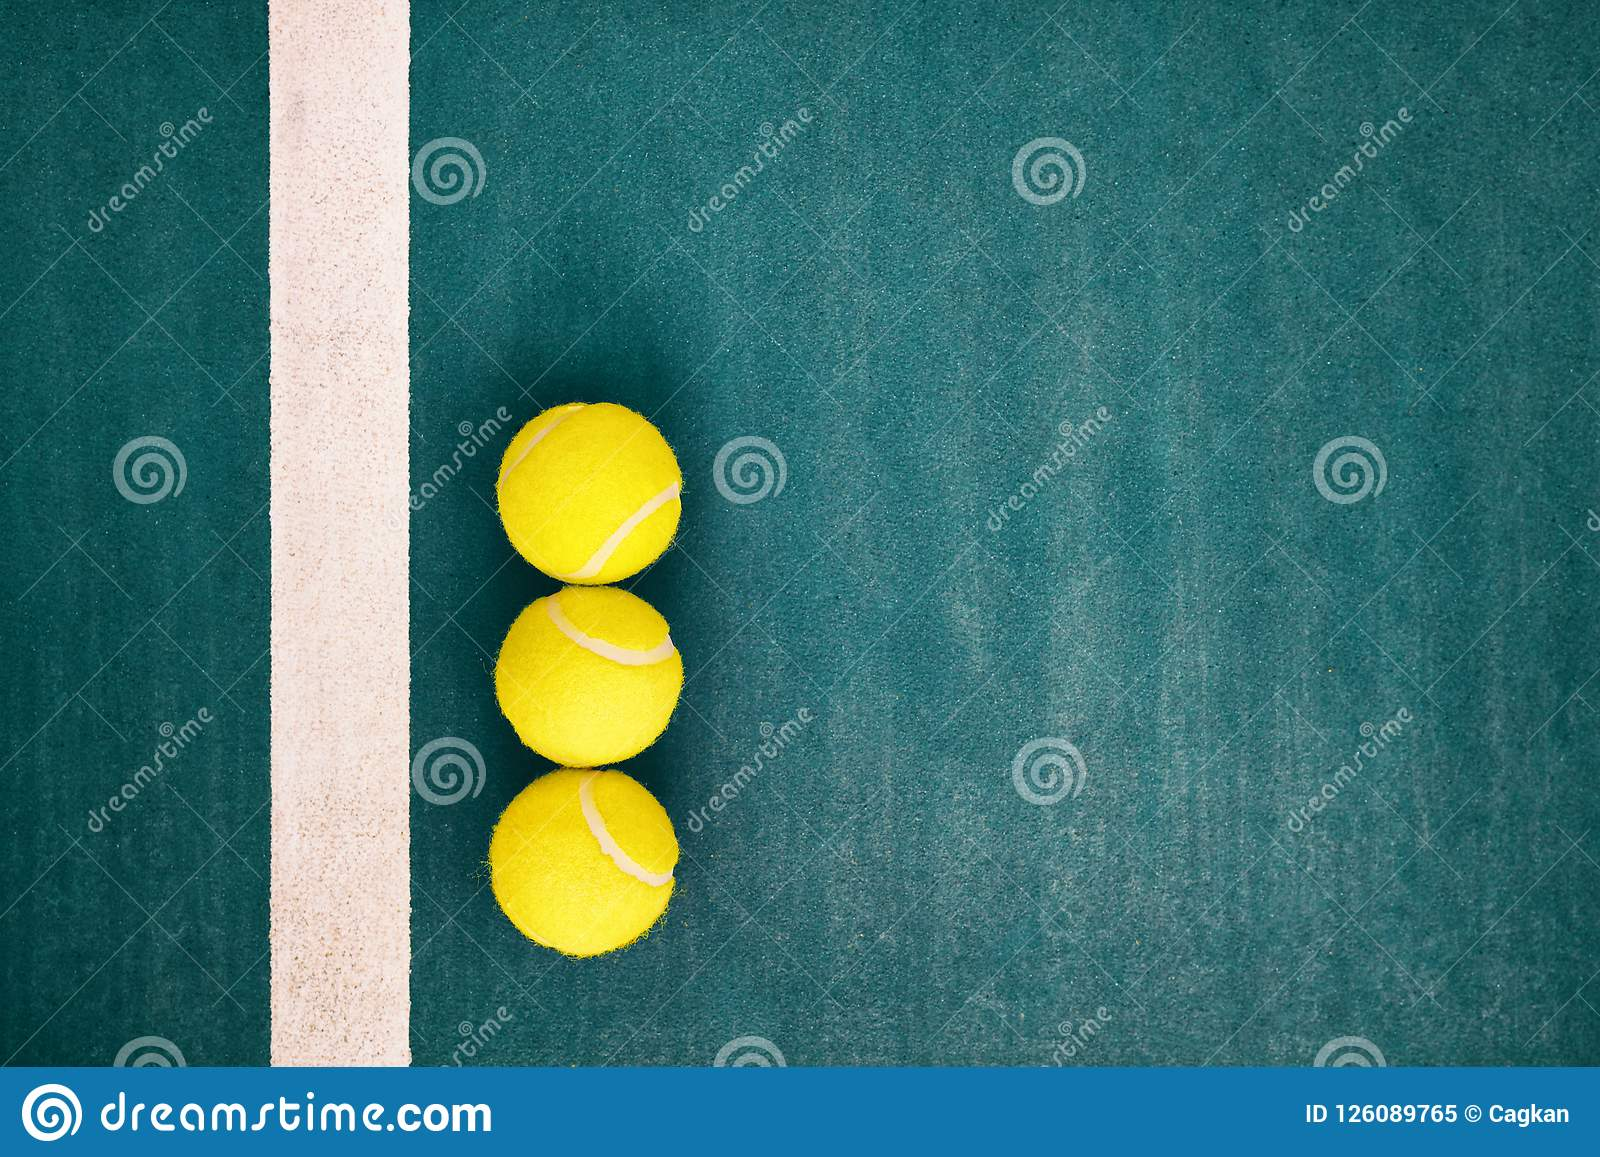 Three Tennis Balls Near The Line Of A Concrete Court Stock Image